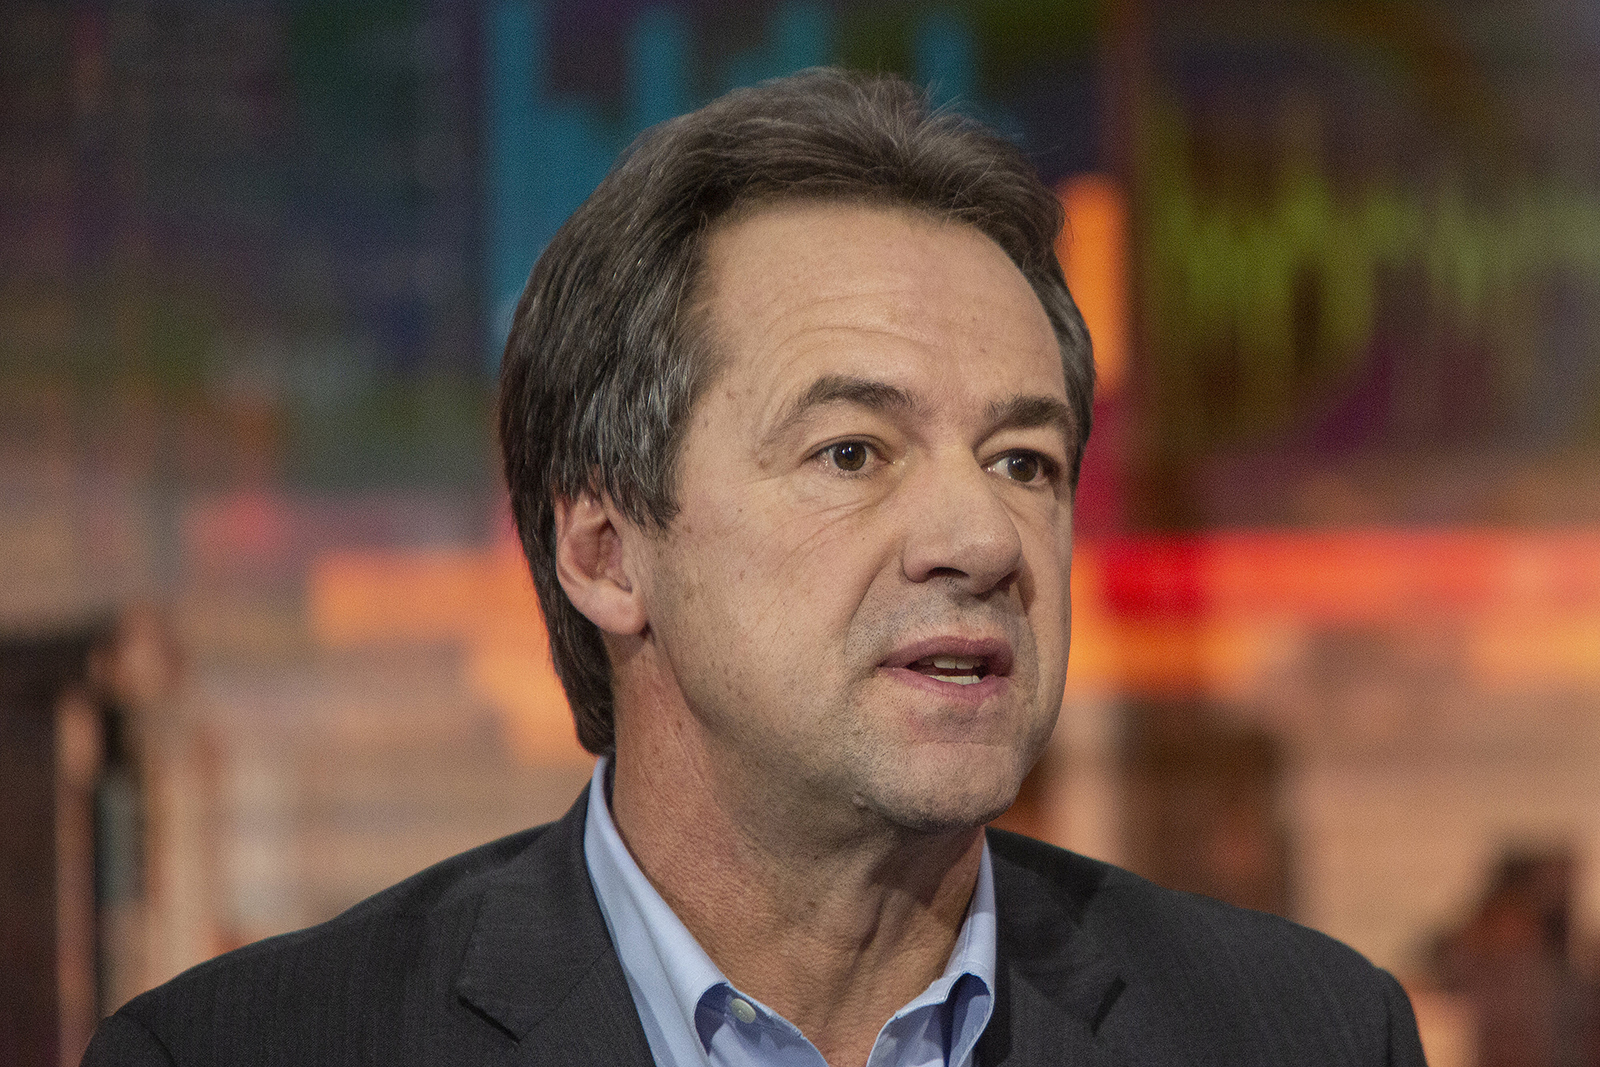 Gov. Steve Bullock of Montana, and then 2020 presidential candidate, speaks during a Bloomberg Television interview in New York, on November 19, 2019.